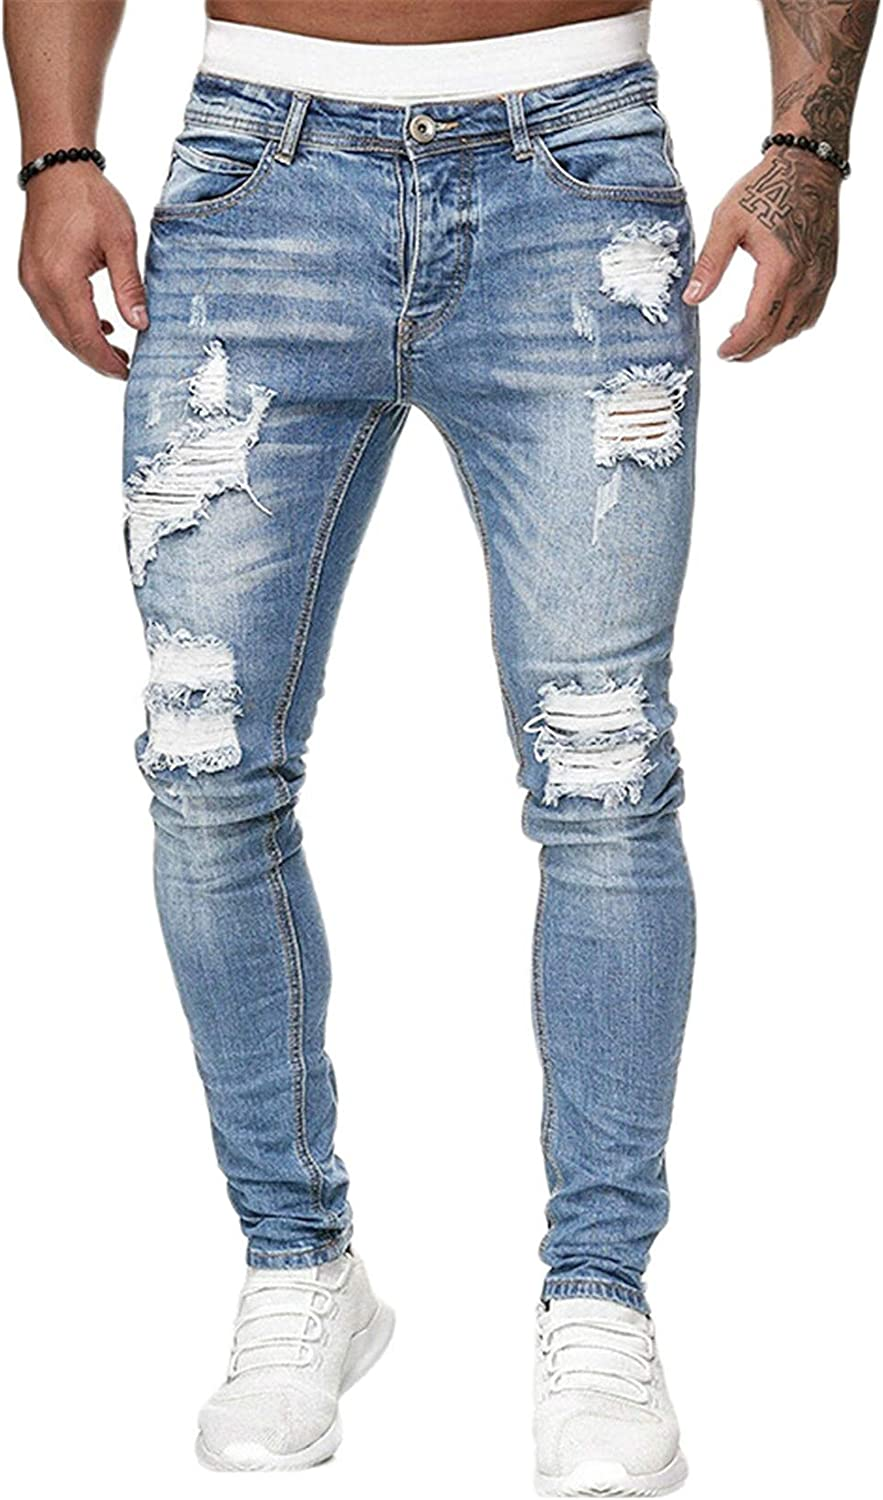 Andongnywell Men's Casual Slim Fit Distressed Denim Pants Ripped Skinny Destroyed Zipper Jeans with Pockets